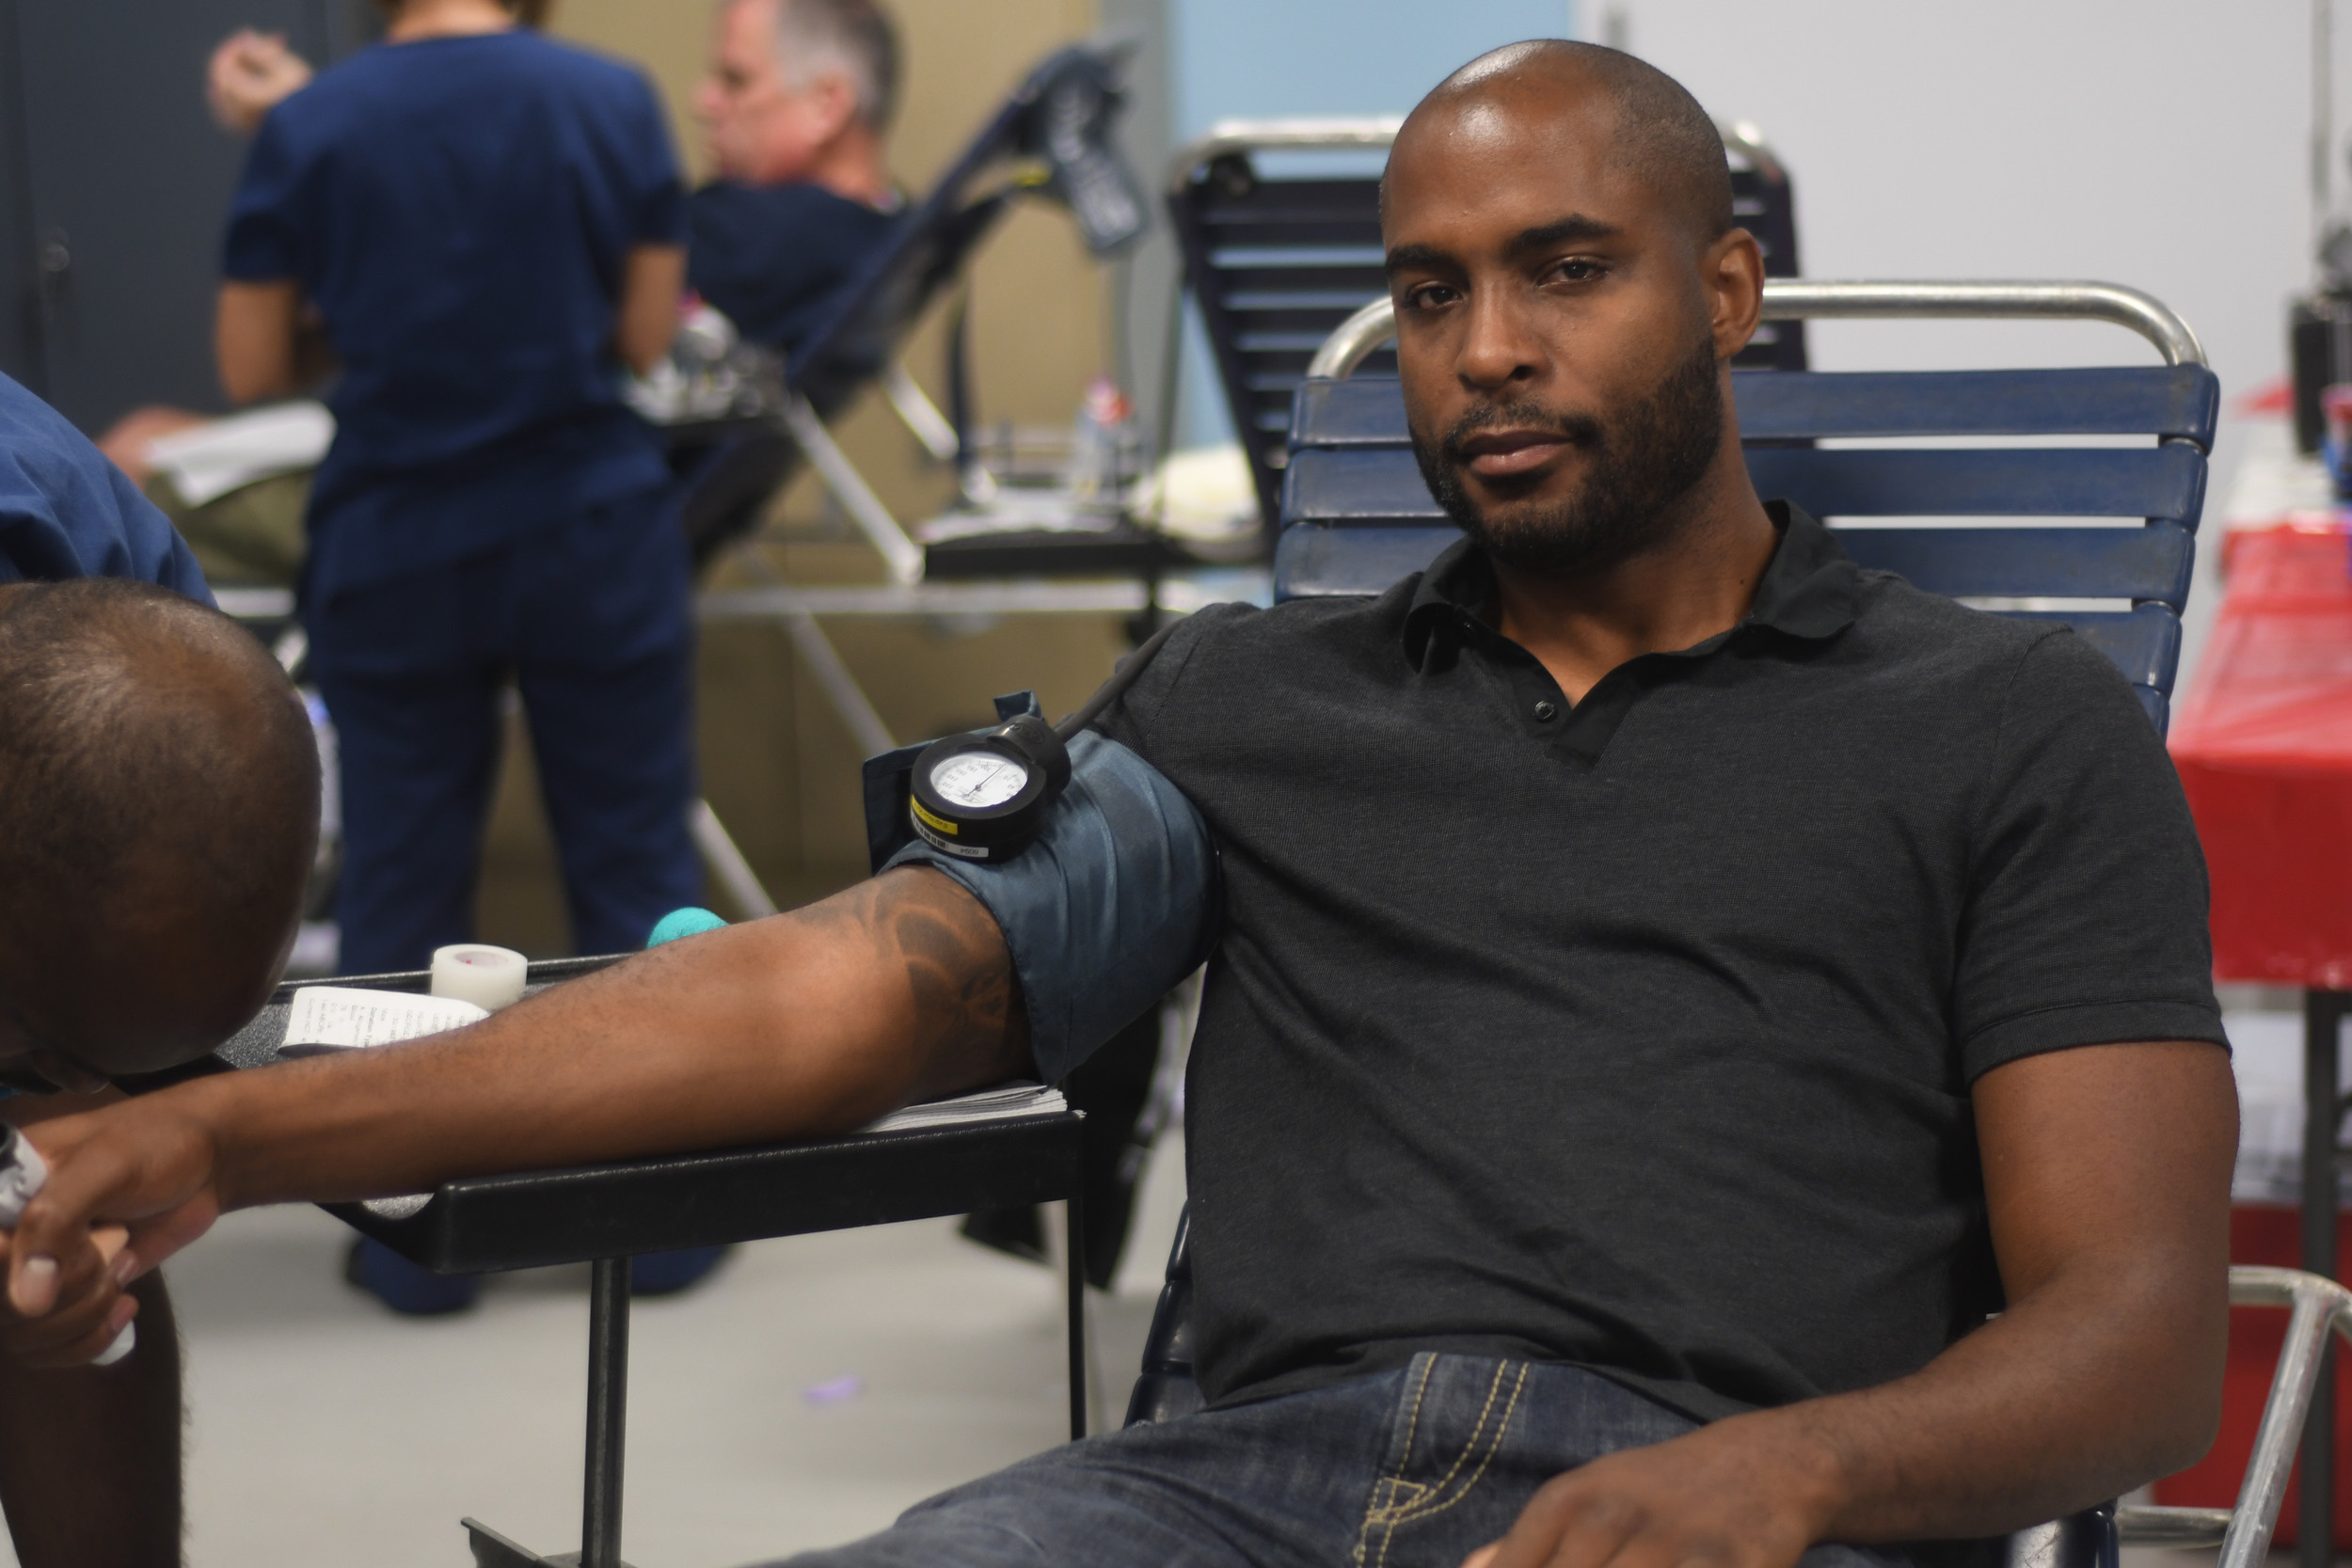 George Heurtelou of Franklin Square happily donated his time and blood Sunday afternoon in Fraklin Square for the drive hosted by the Knights of Columbus.